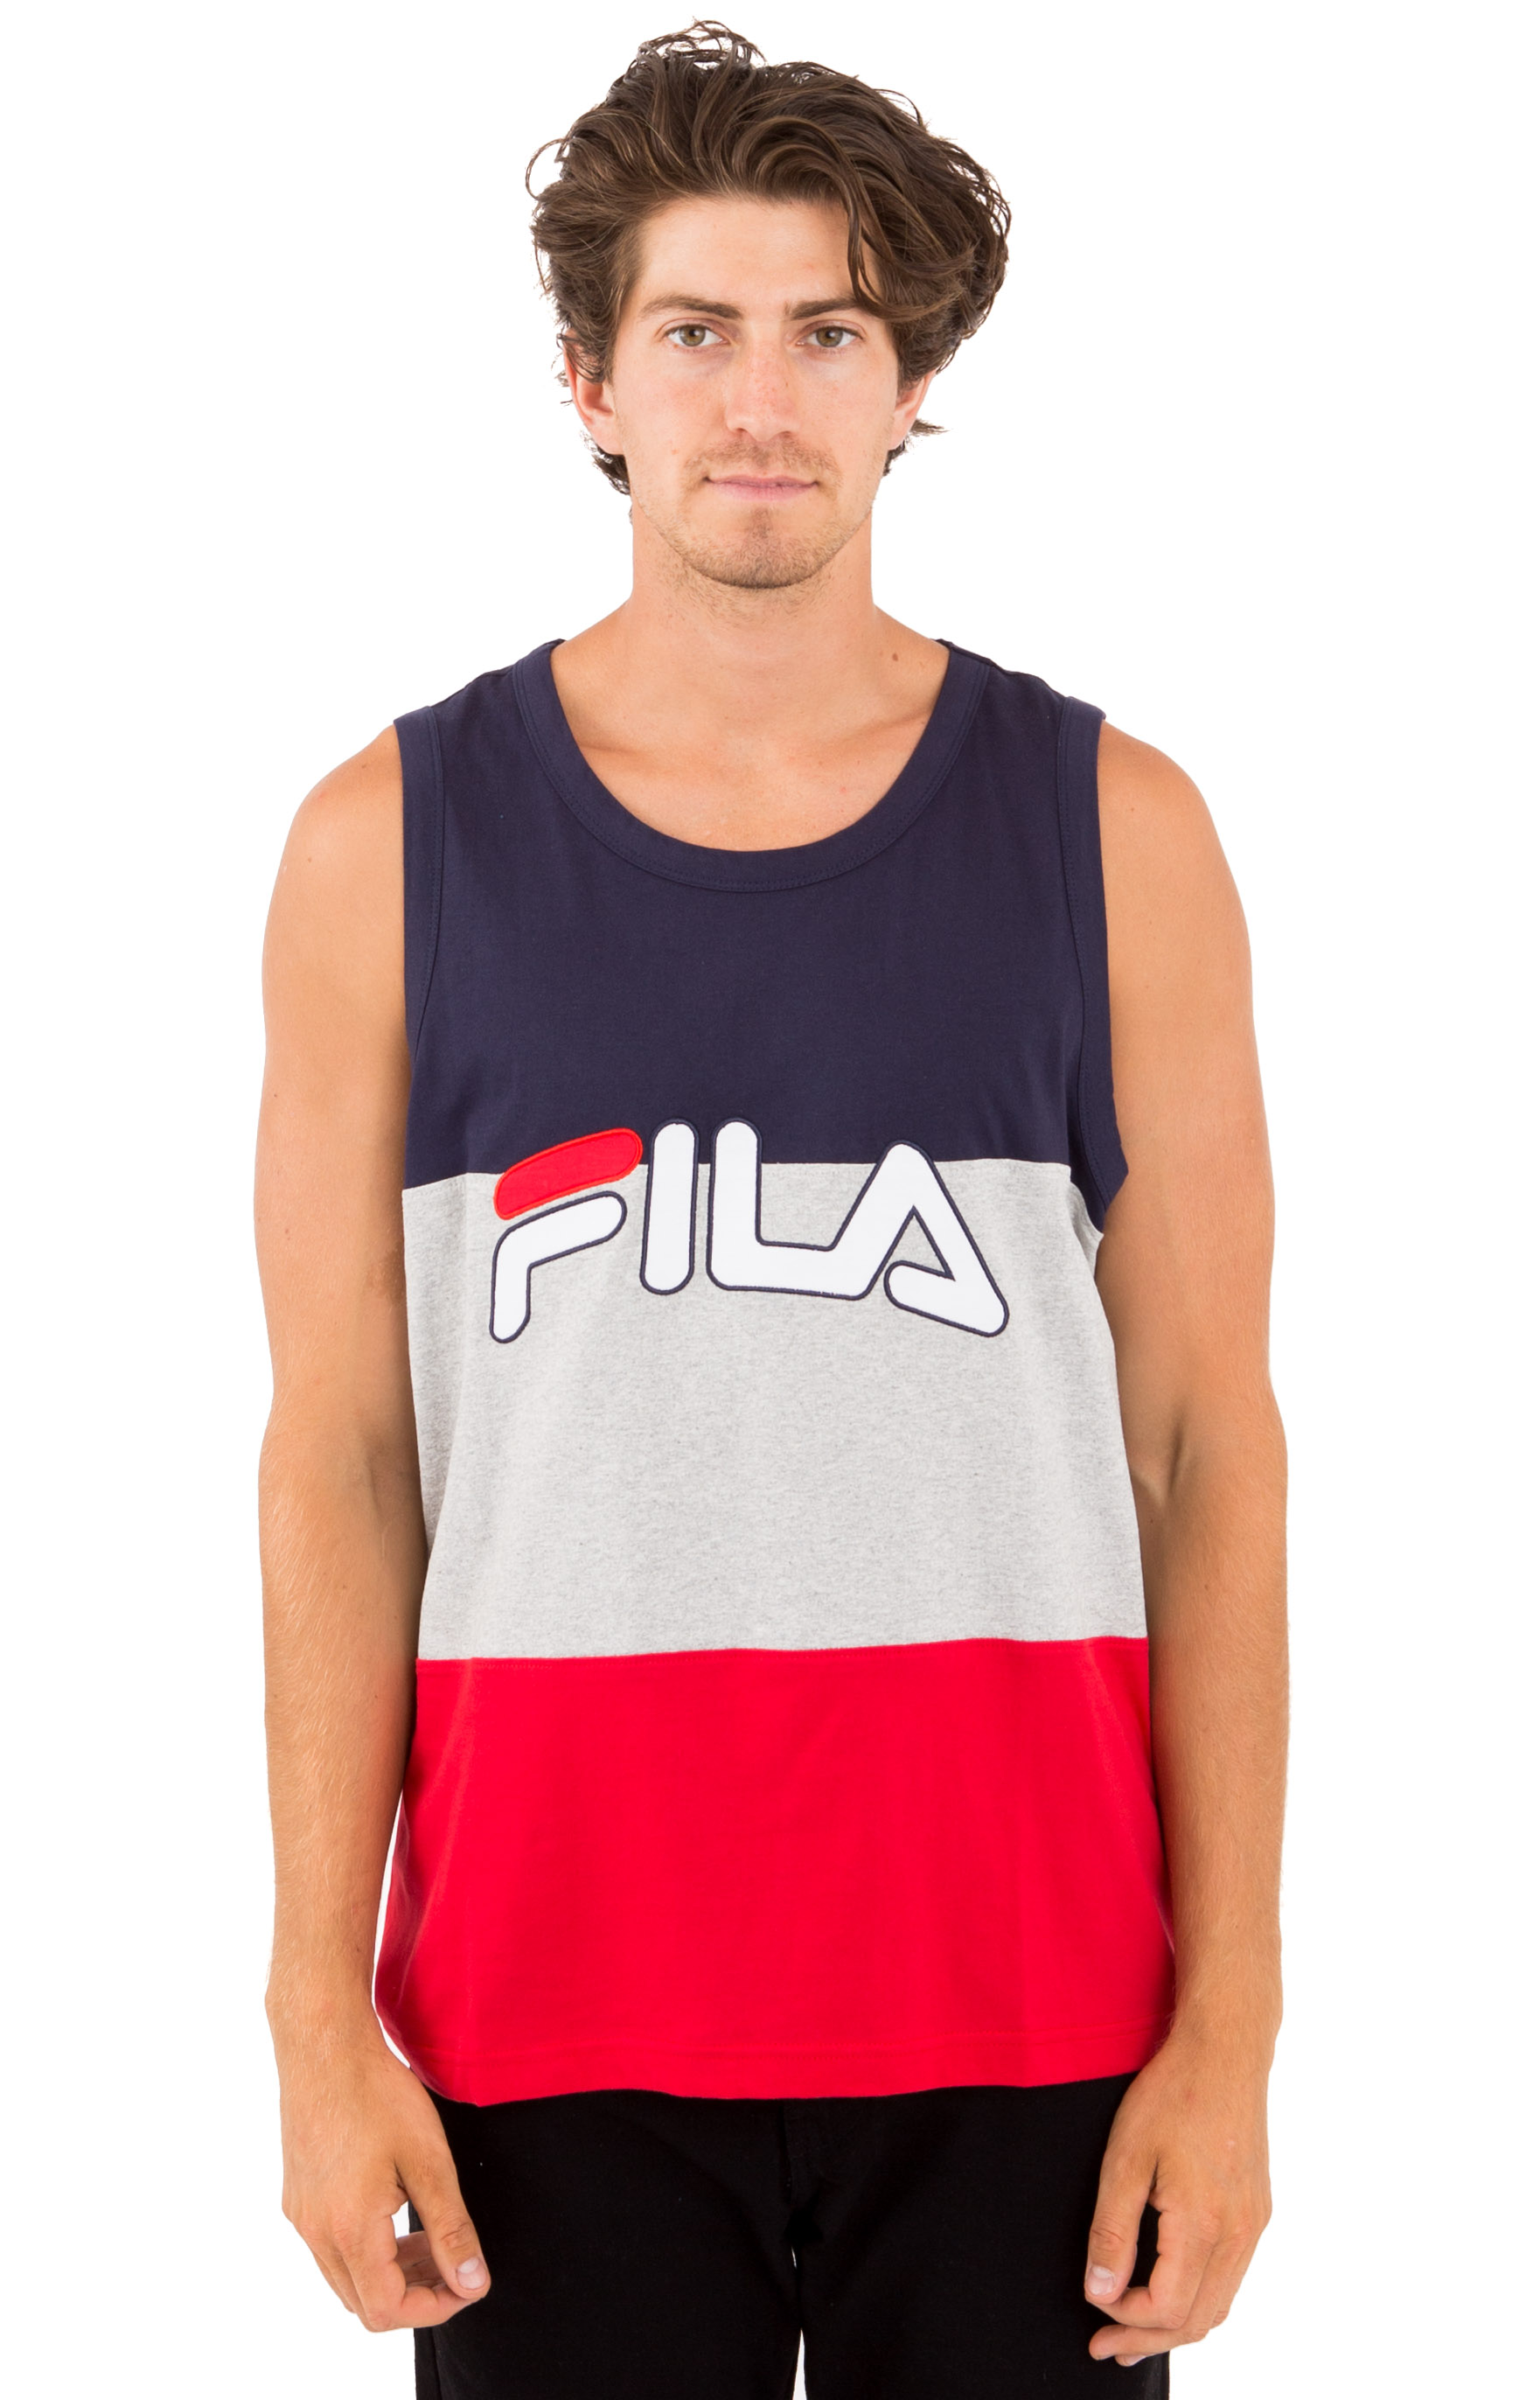 Tai Logo Tank Top - Peacoat/Grey/Red